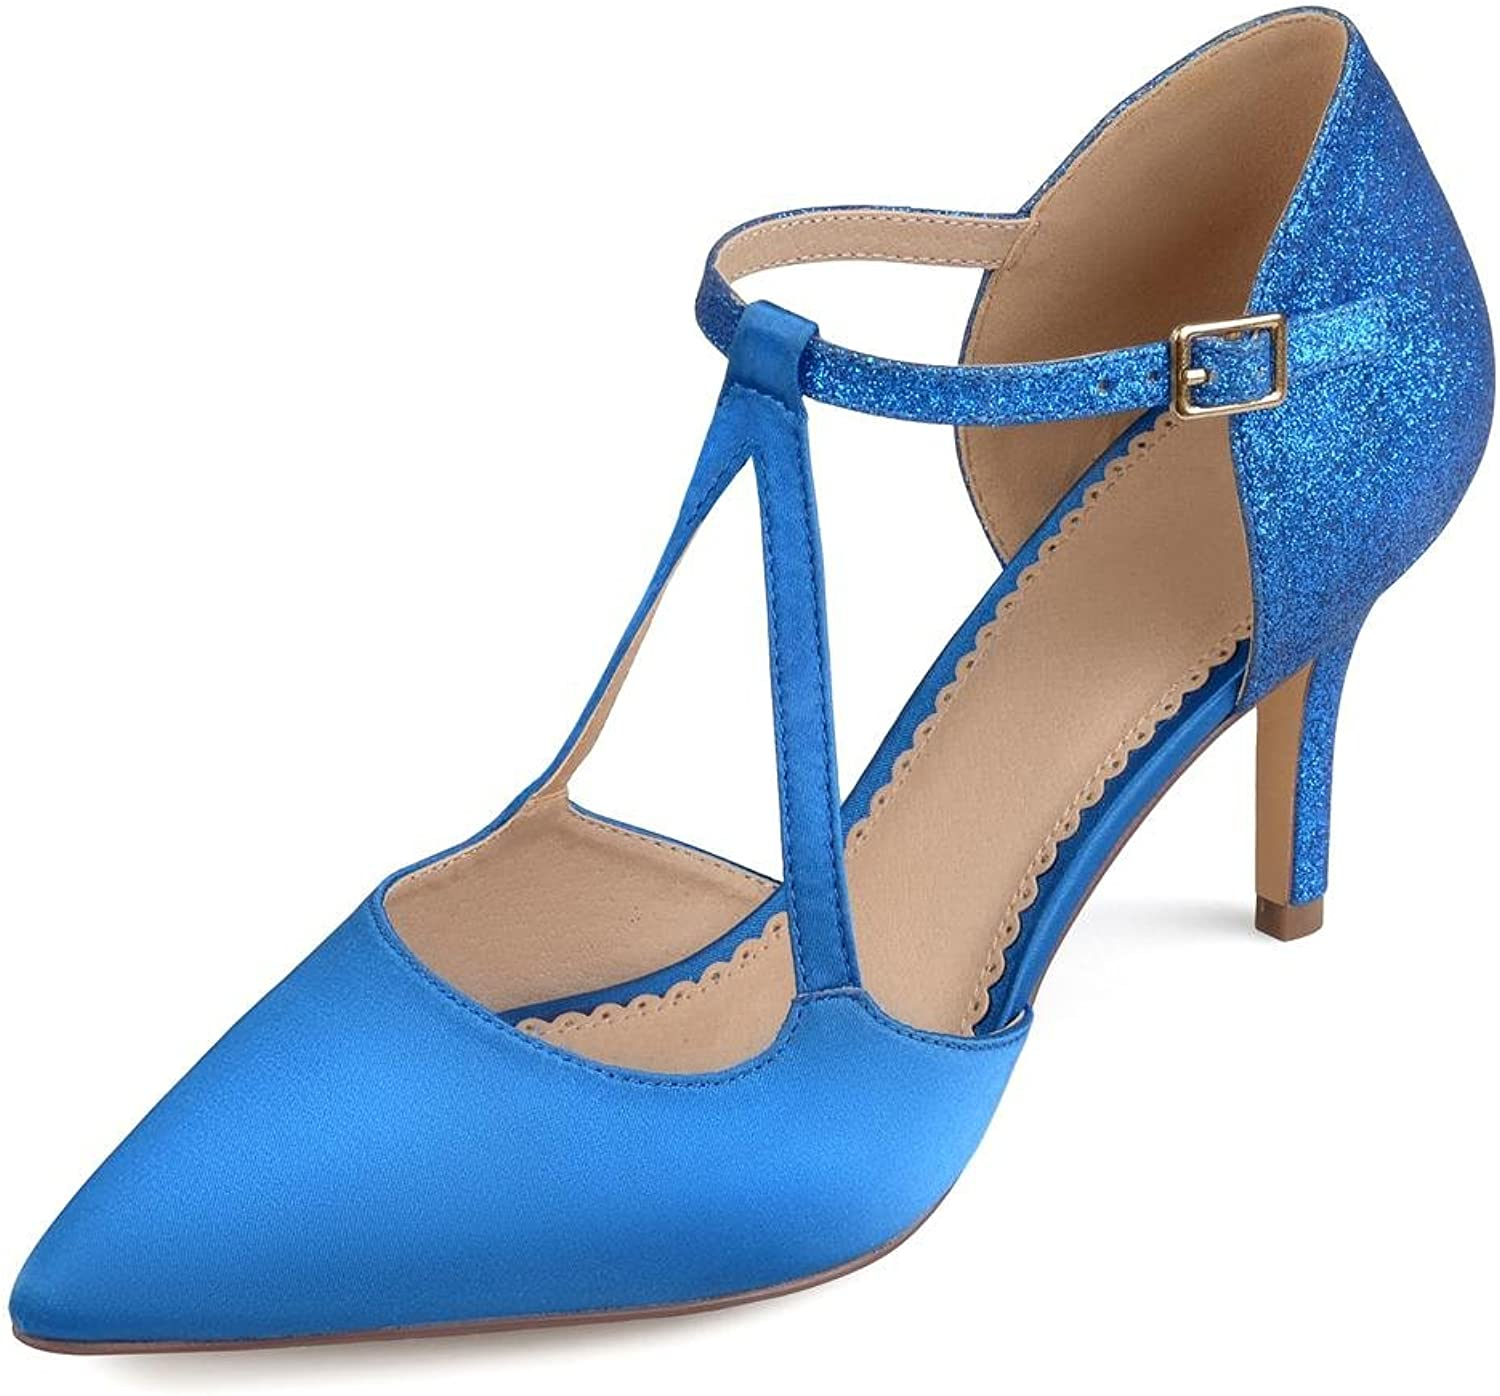 6012a6015b Brinley Co Womens Faux Leather Satin Glitter Pointed Toe V-Strap Heels